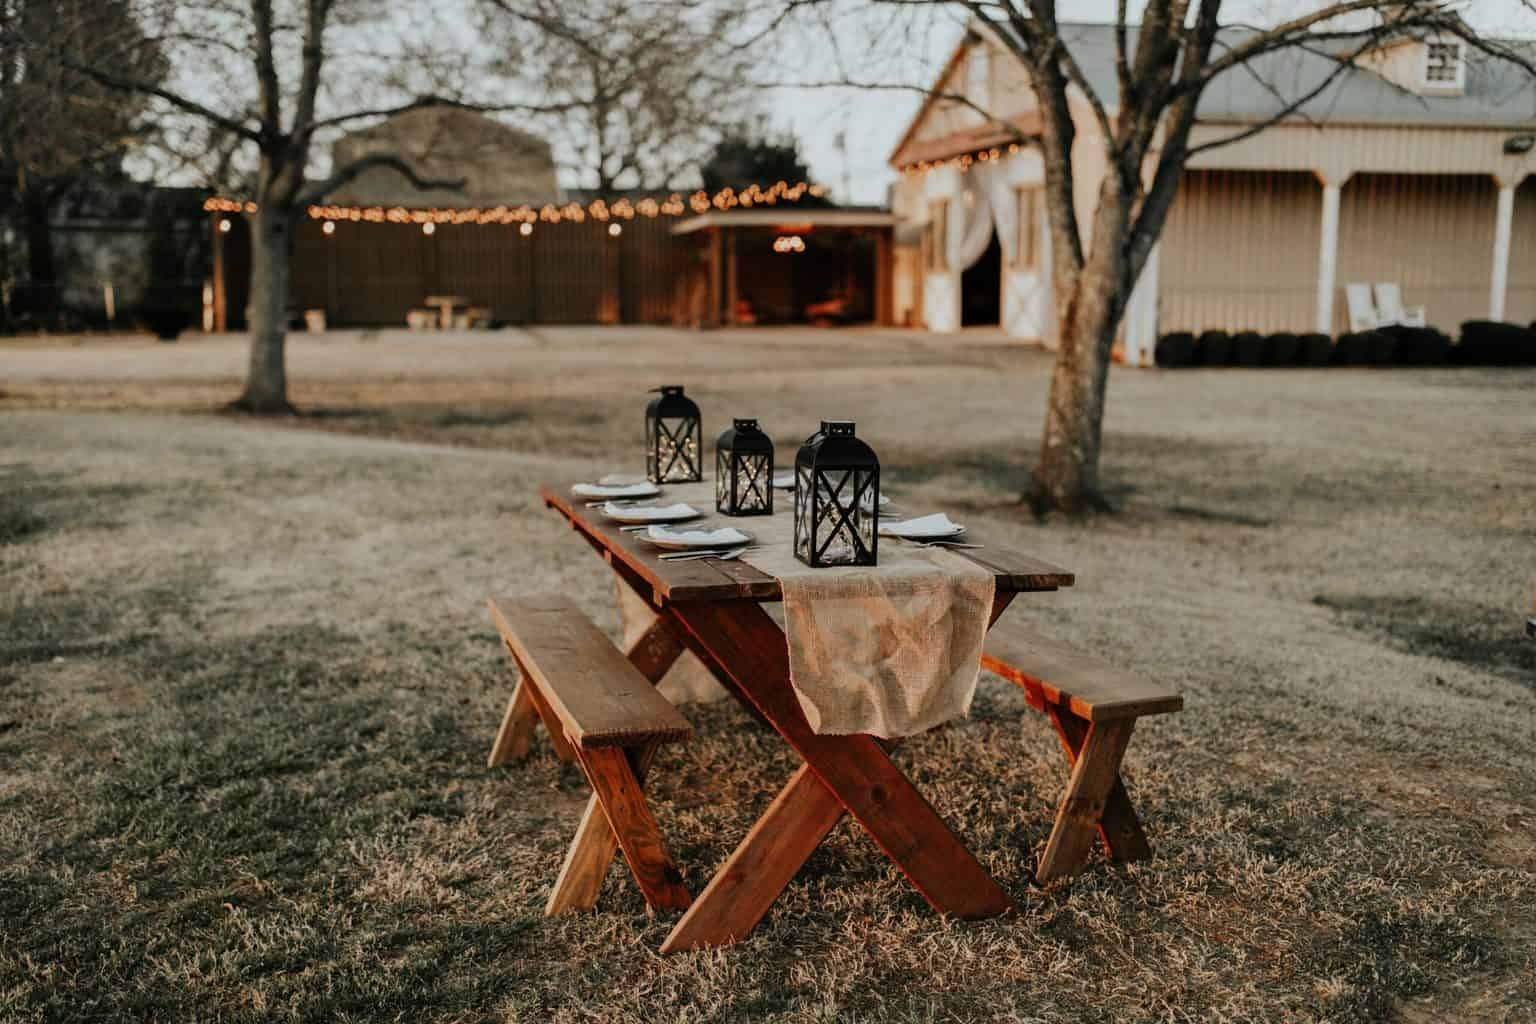 A picnic table outdoors with lamps